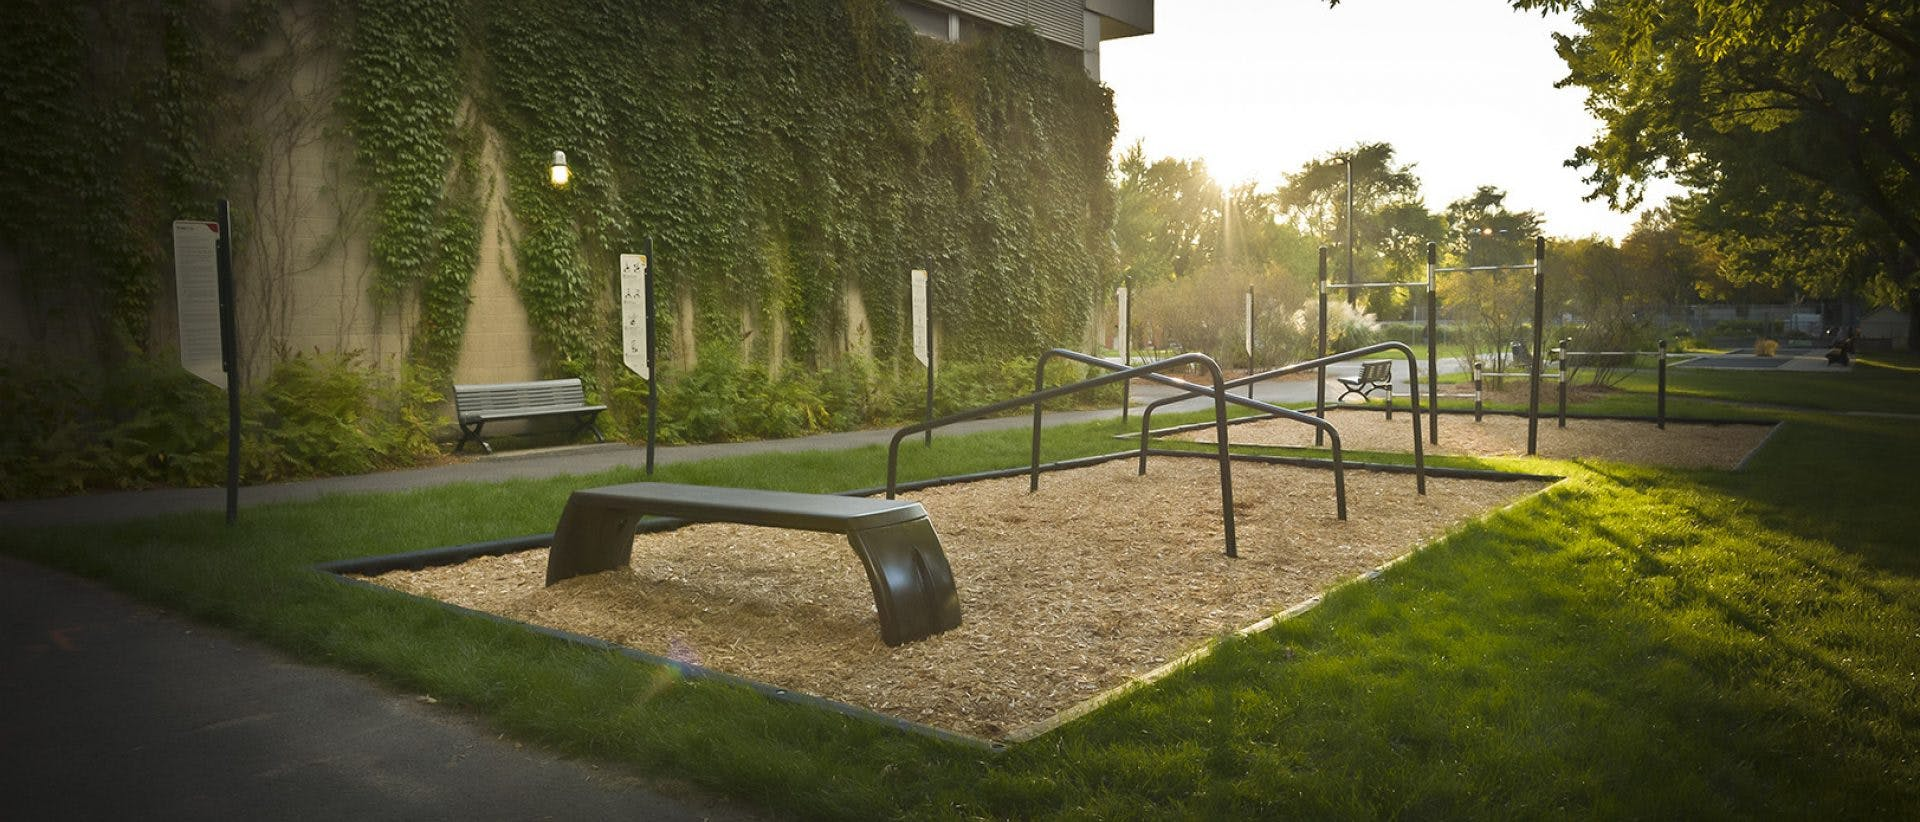 Outdoor Fitness Station/Circuit